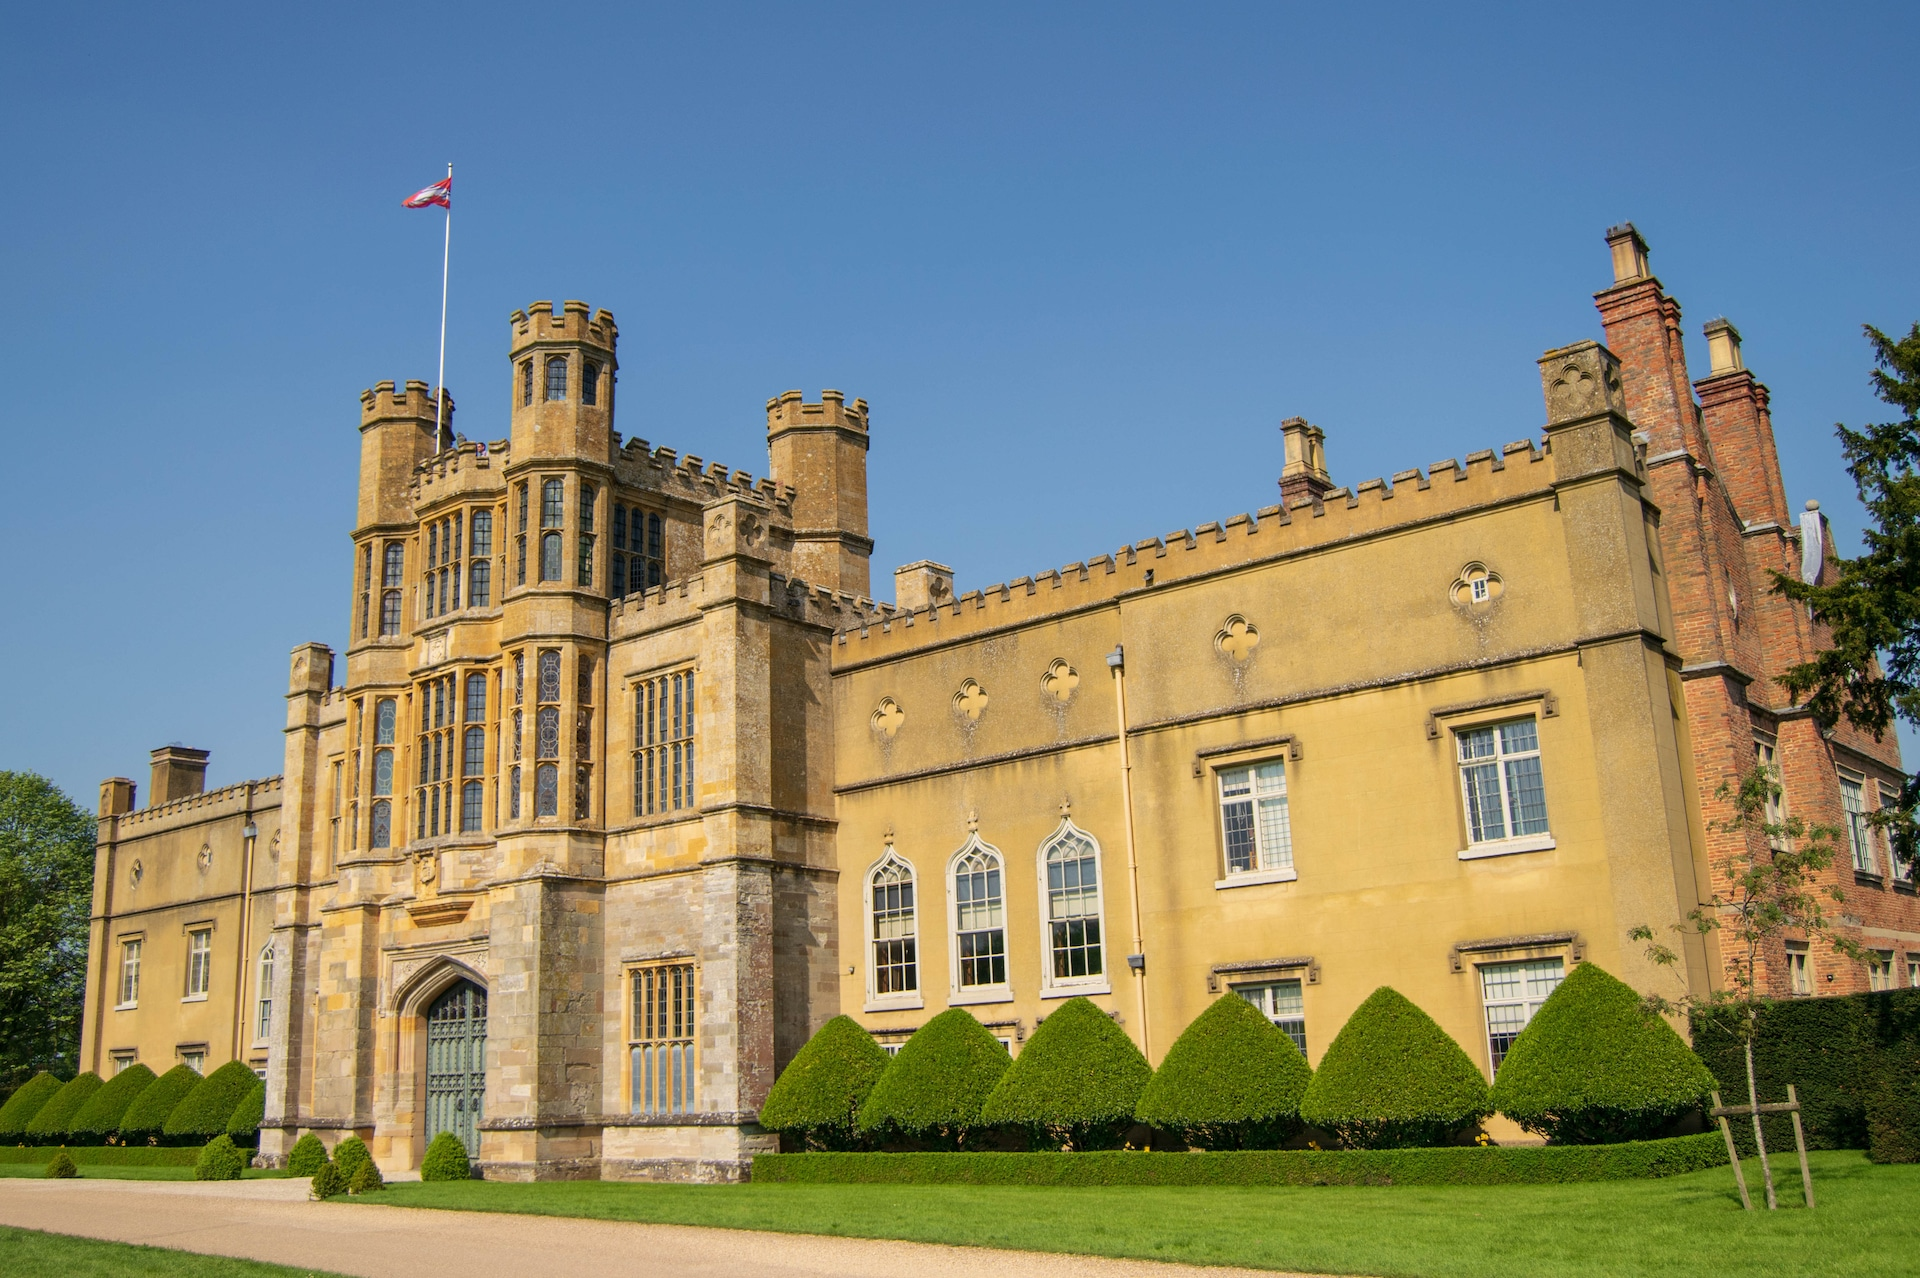 Coughton Court in the beautiful sunshine